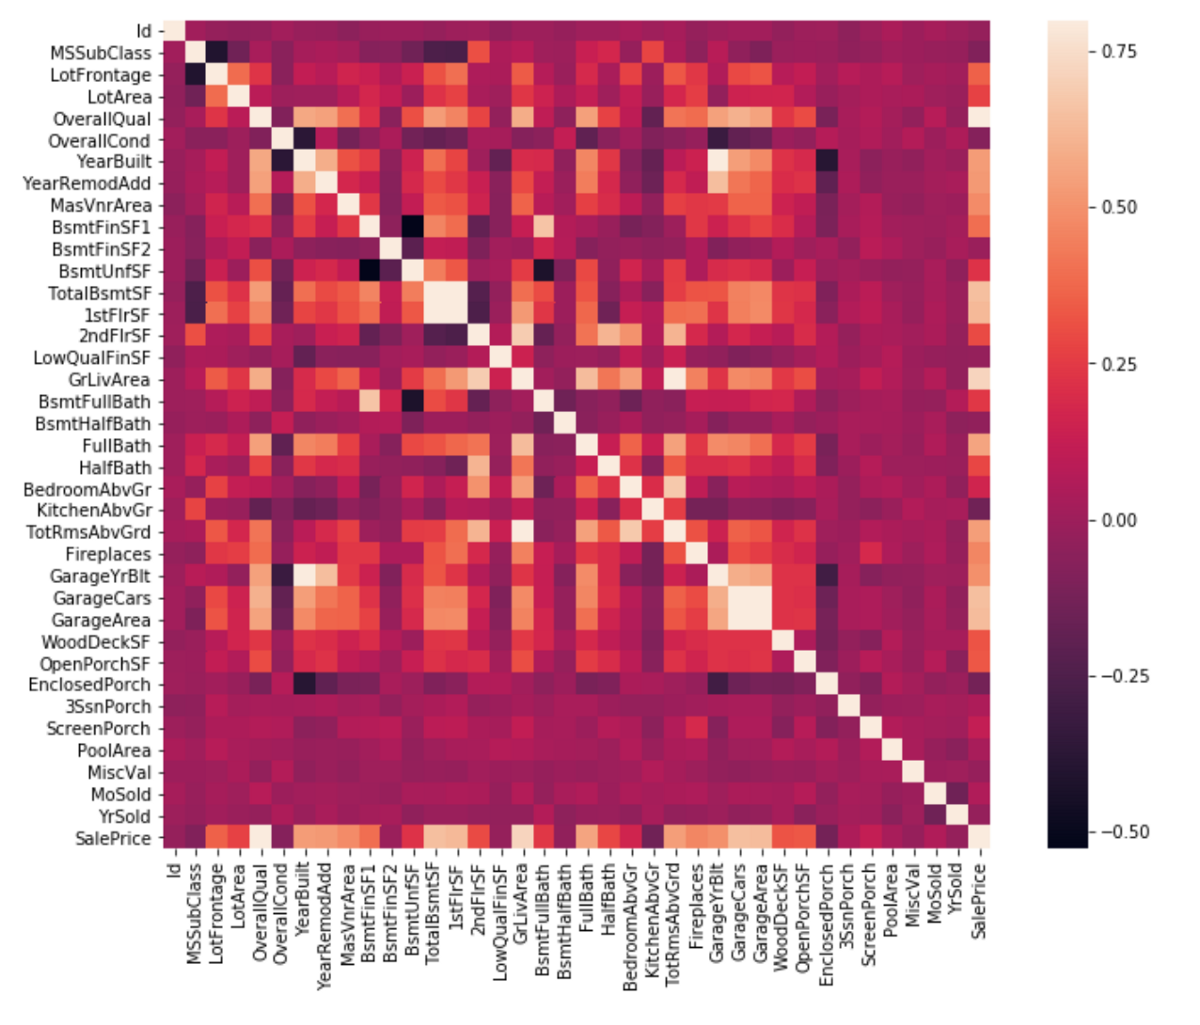 House Prices in Ames, Iowa — Working with Kaggle - Raghav